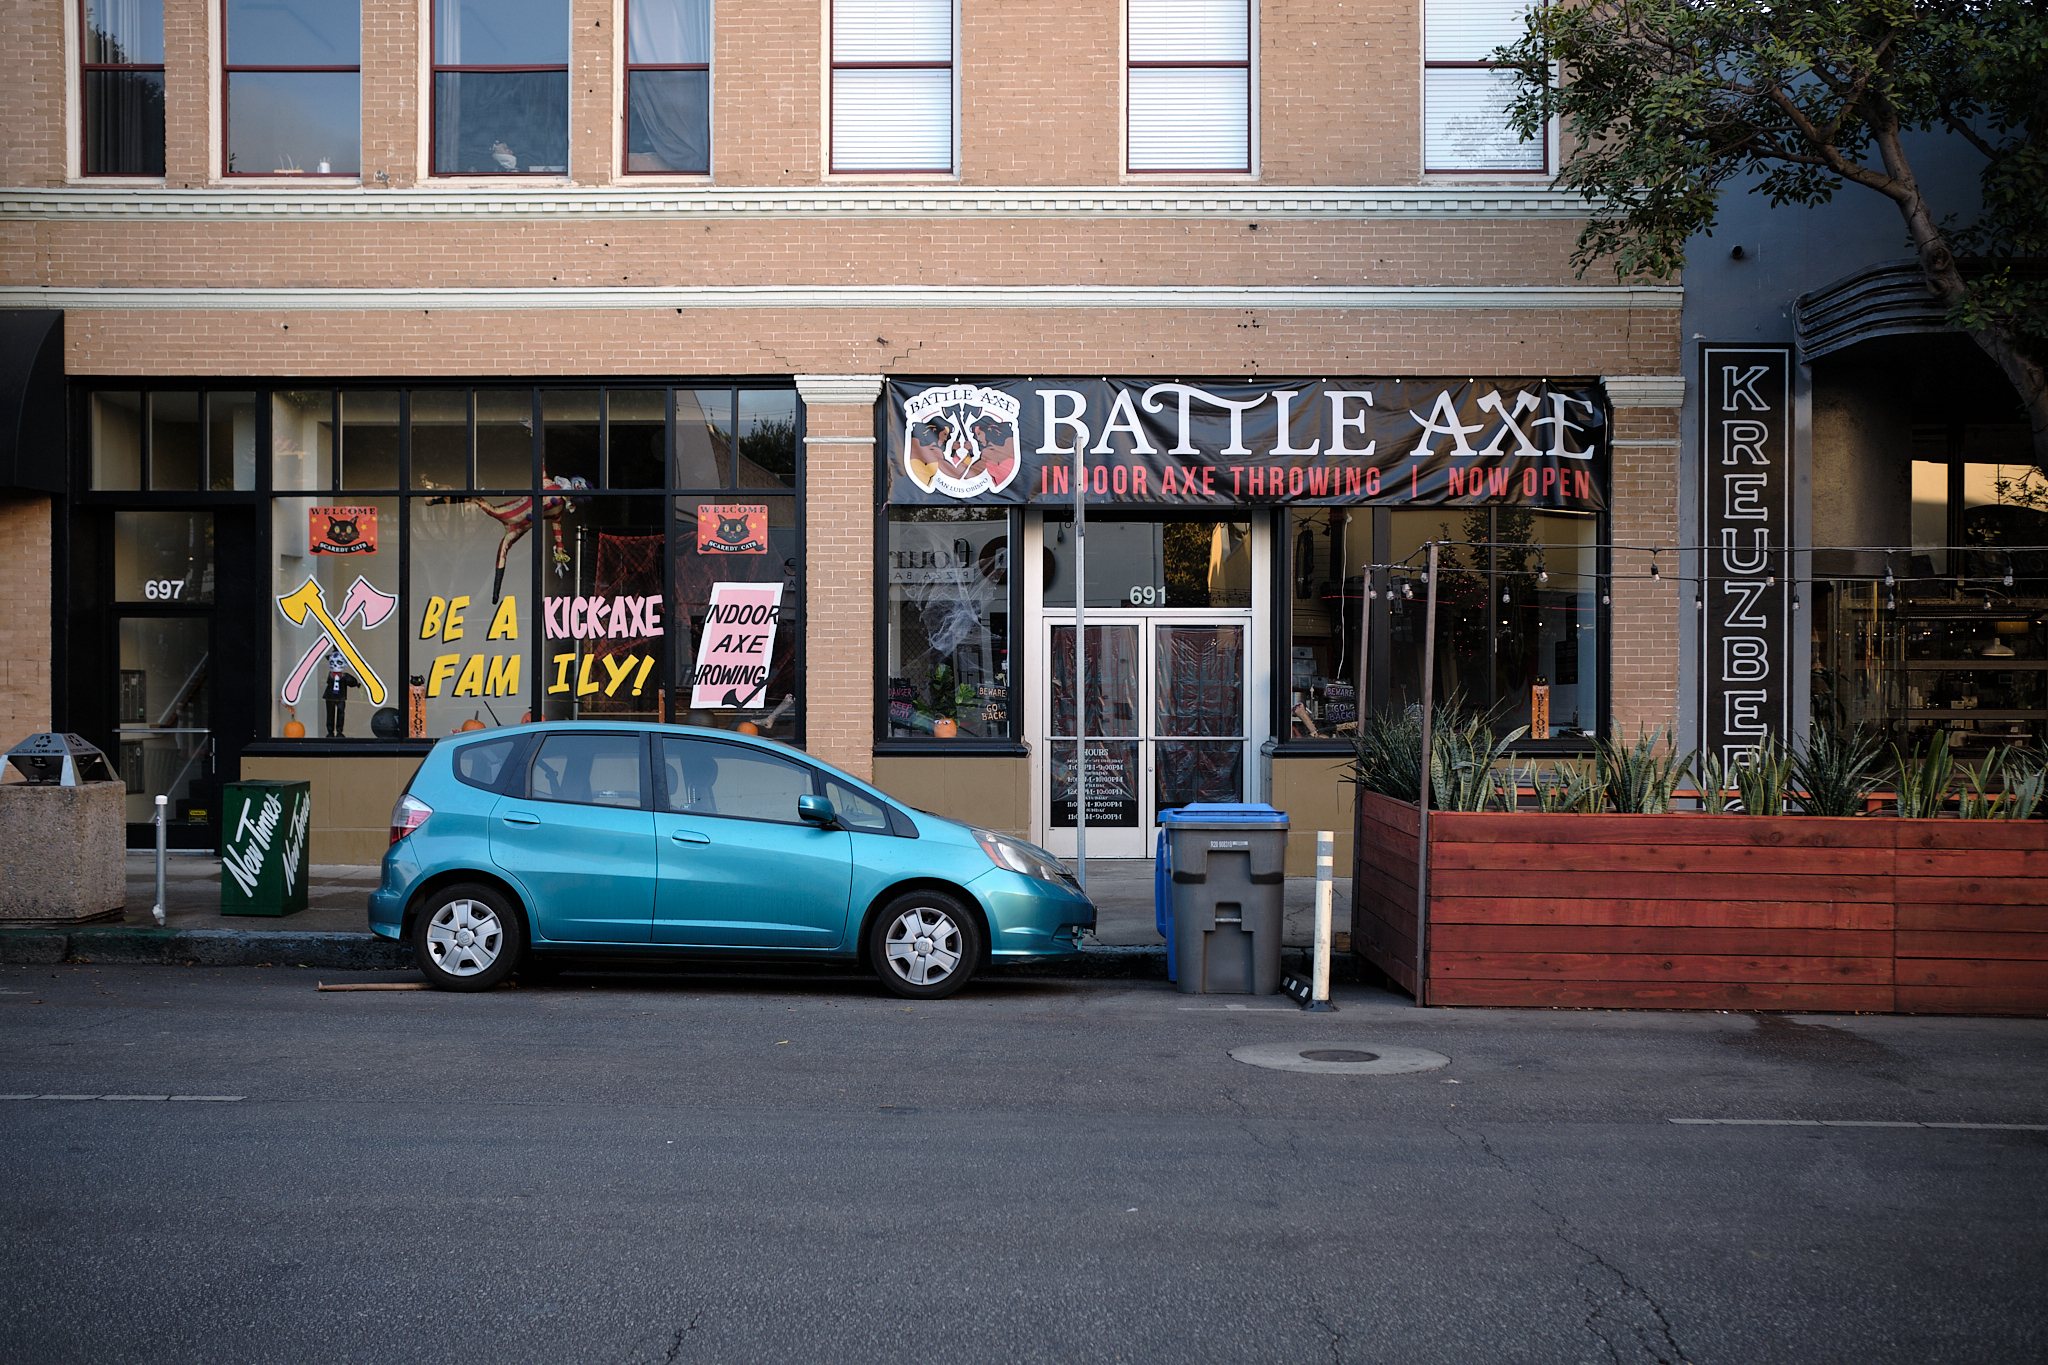 Street view photograph of Indoor axe throwing business.